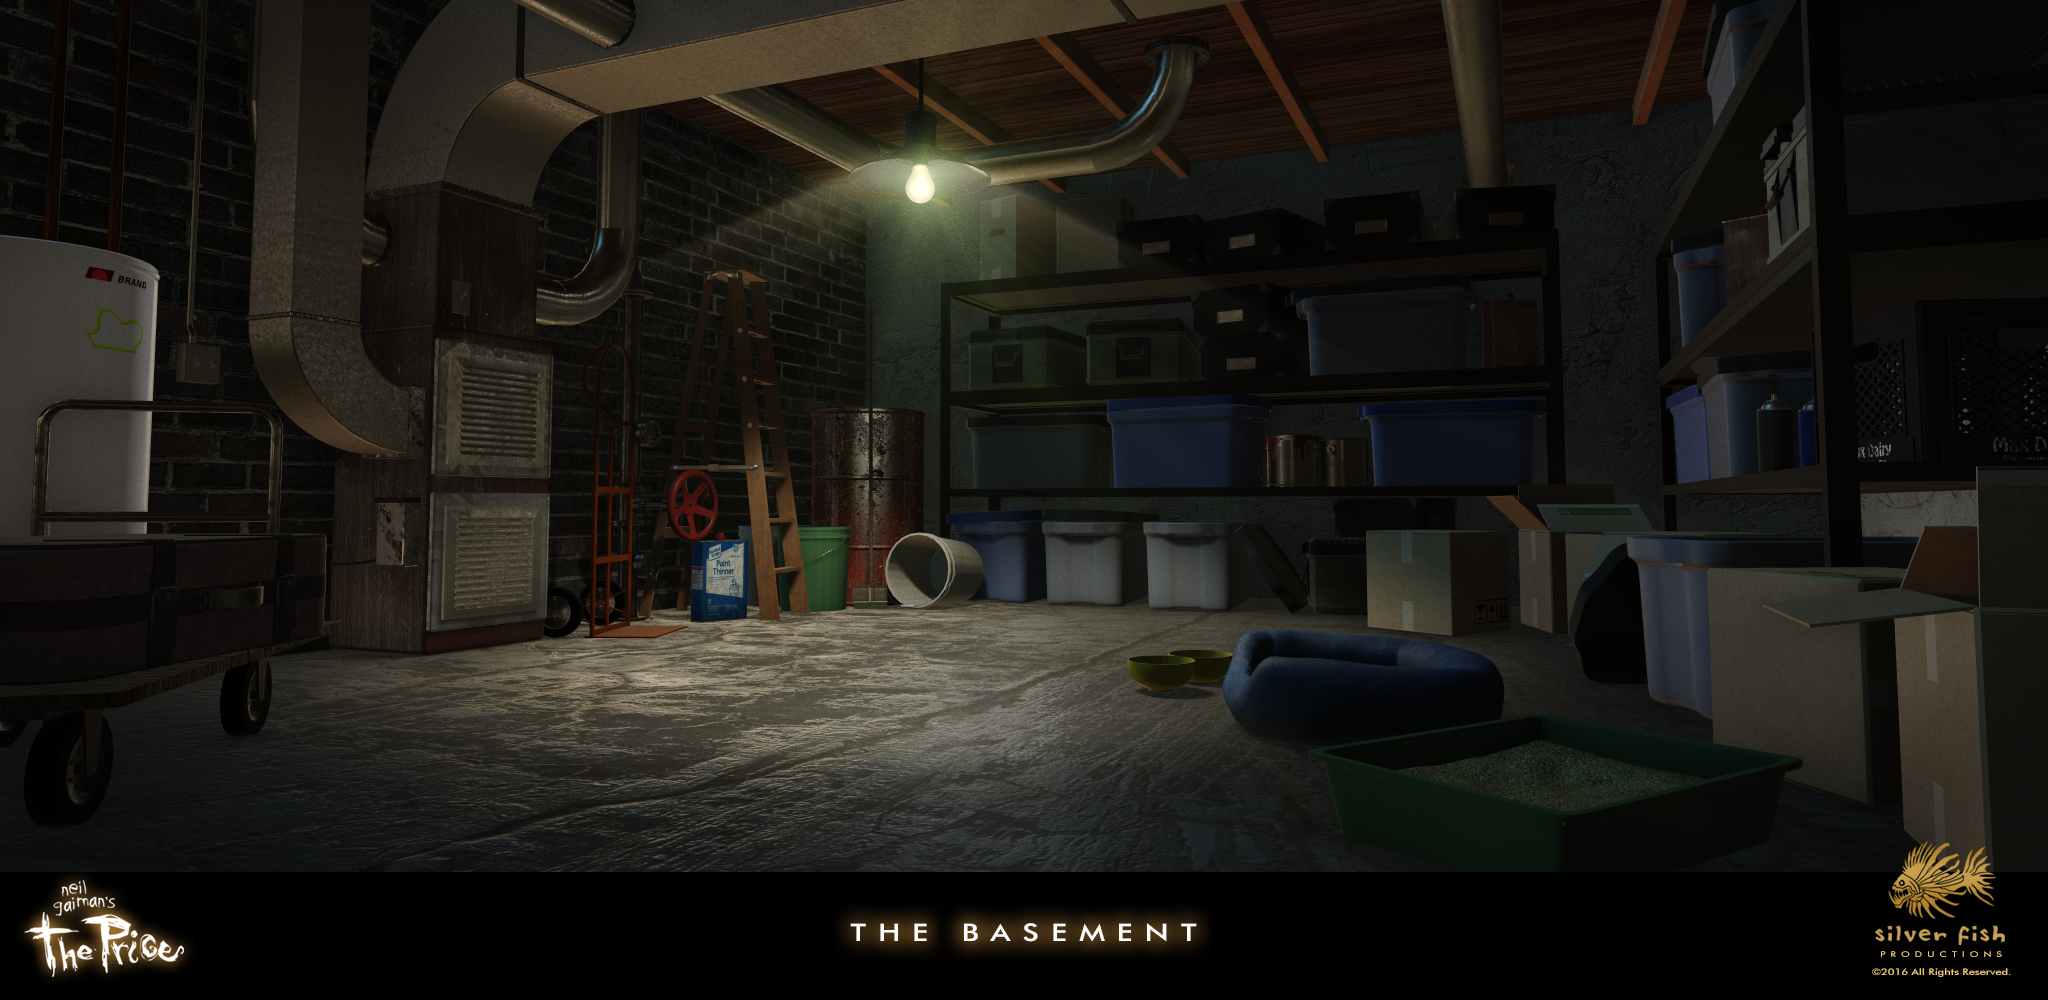 one of the featured locations in the film the basement